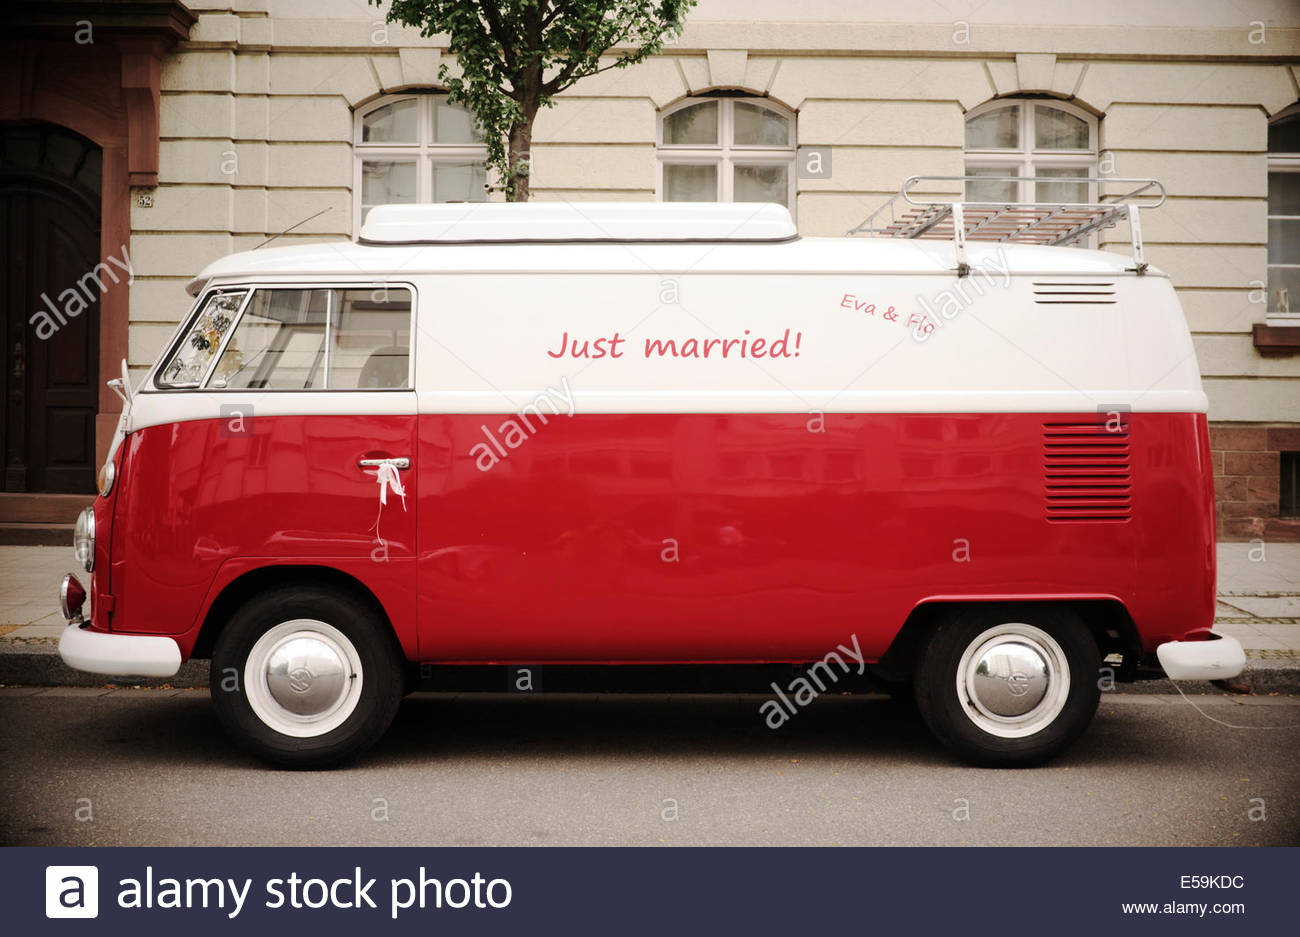 Volkswagen camper van, with 'Just Married !' written on side. Heidelberg, Germany. Stock Photo